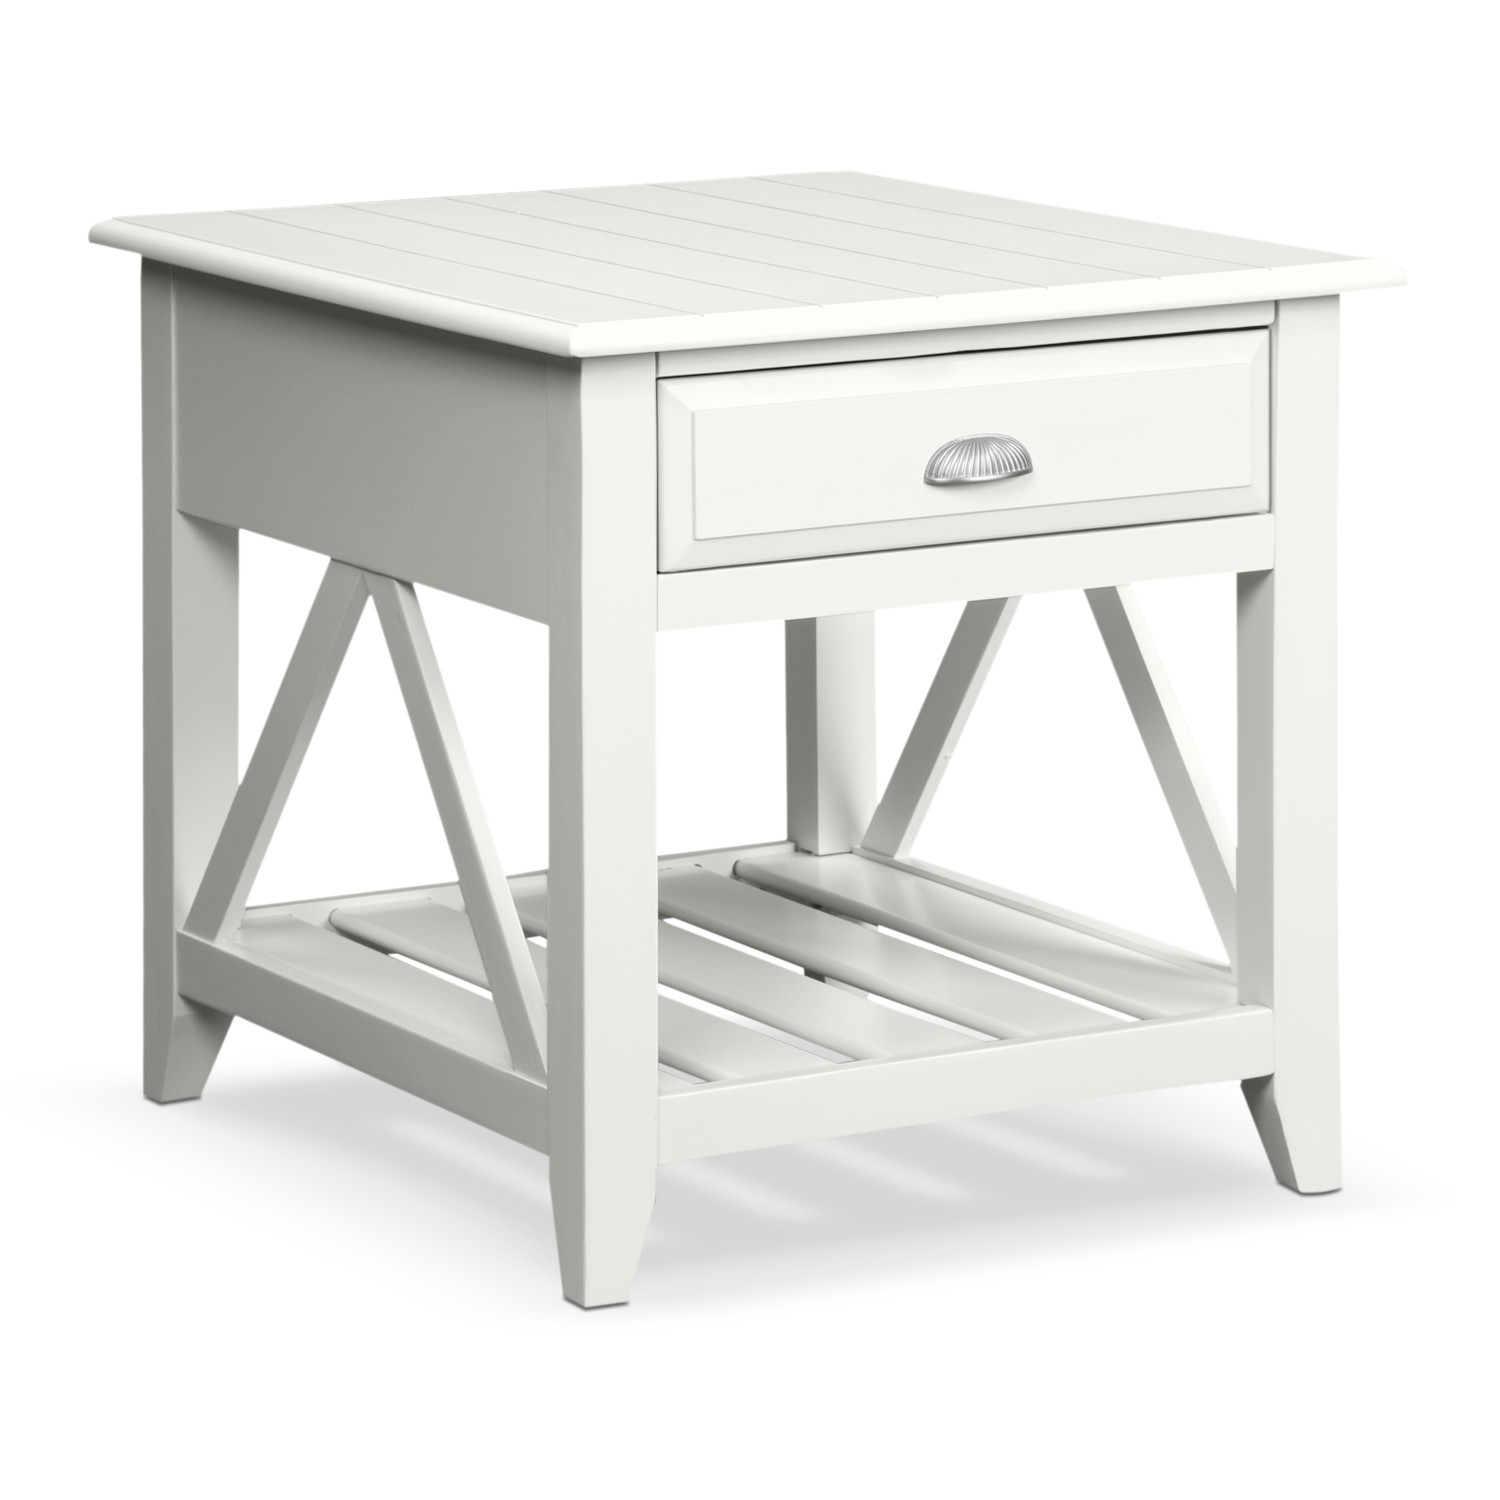 fresh white end table with drawer margate threshold target storage surprising design idea small simple ikea for bedroom dark wood top basket magazine rack charging station glass